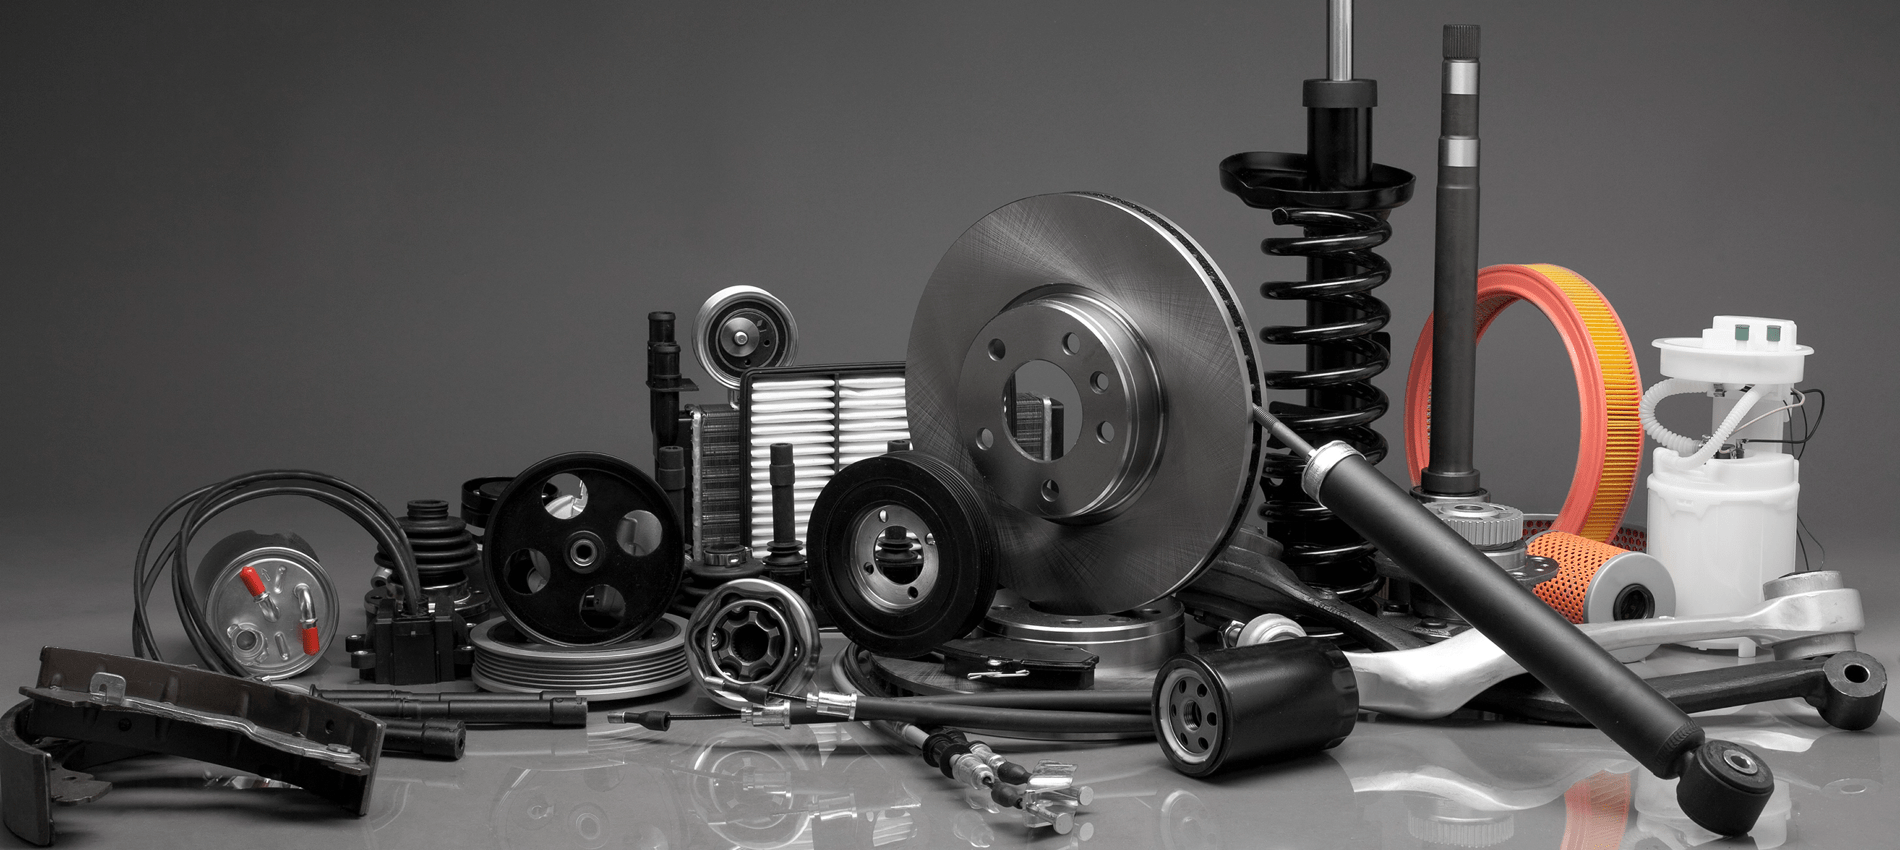 auto parts placed on a table